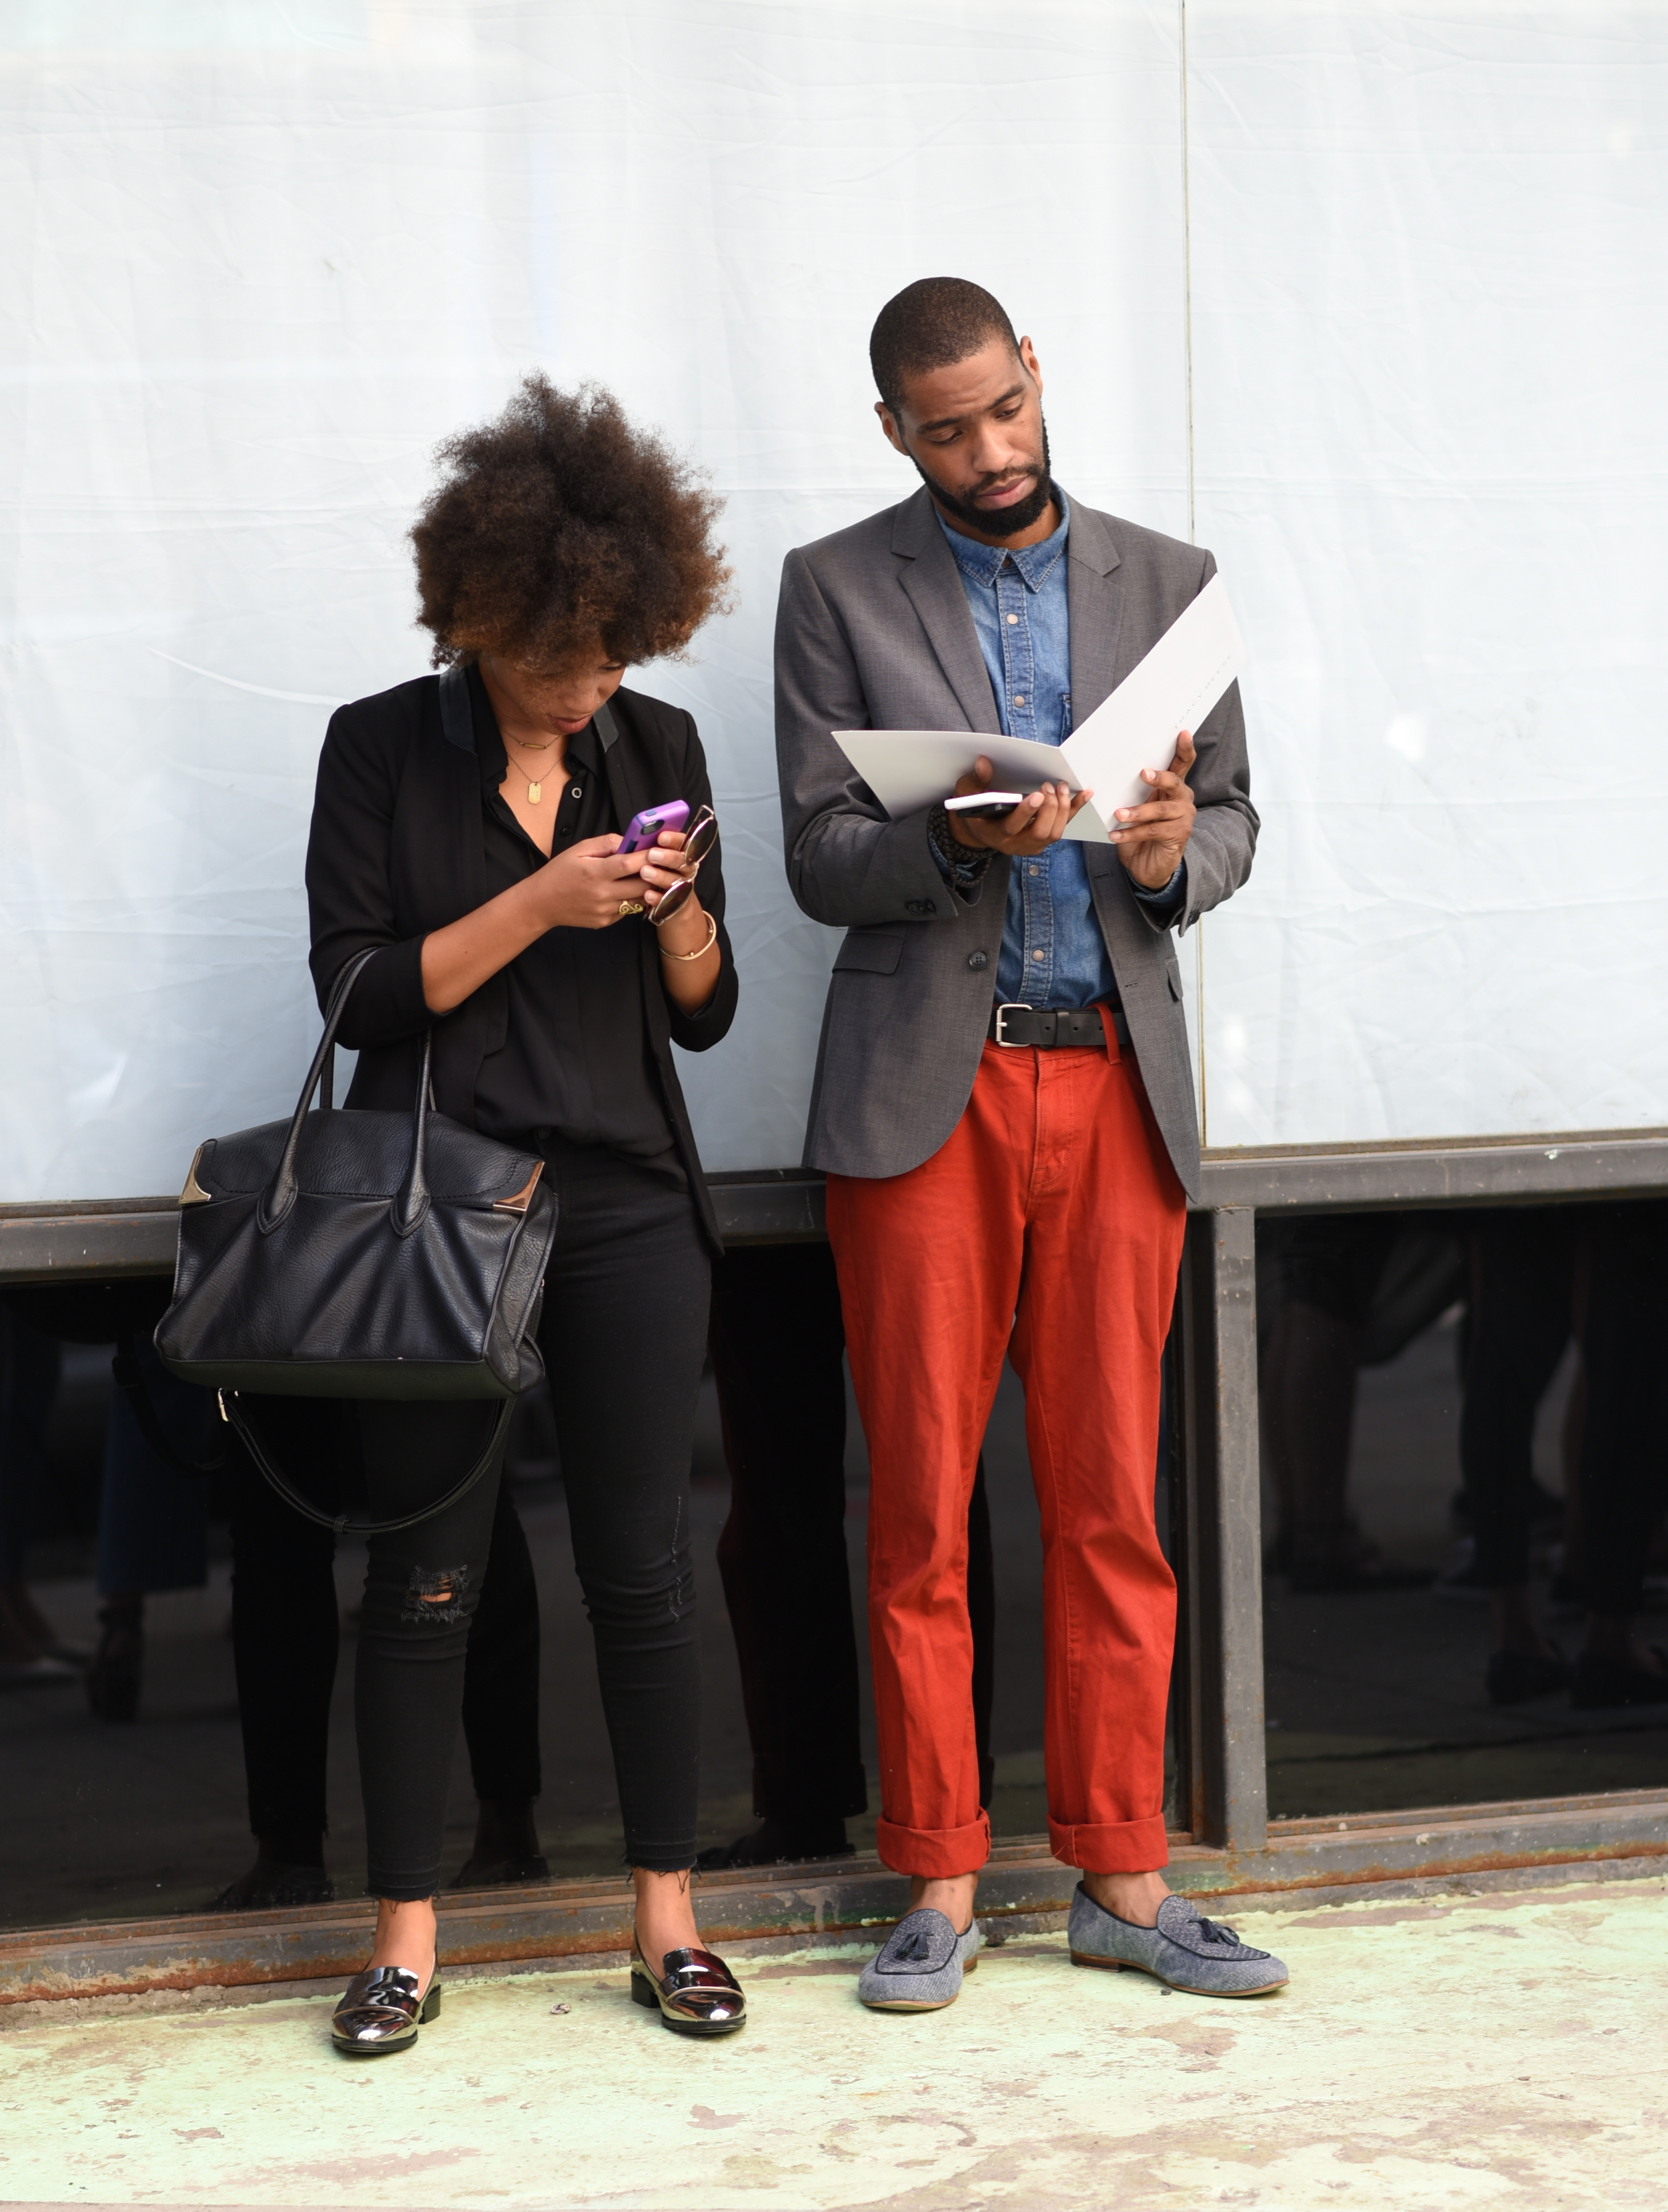 Almost every man at Fashion Week rolled their pants at the ankles. Red pants were popular with the men as well.